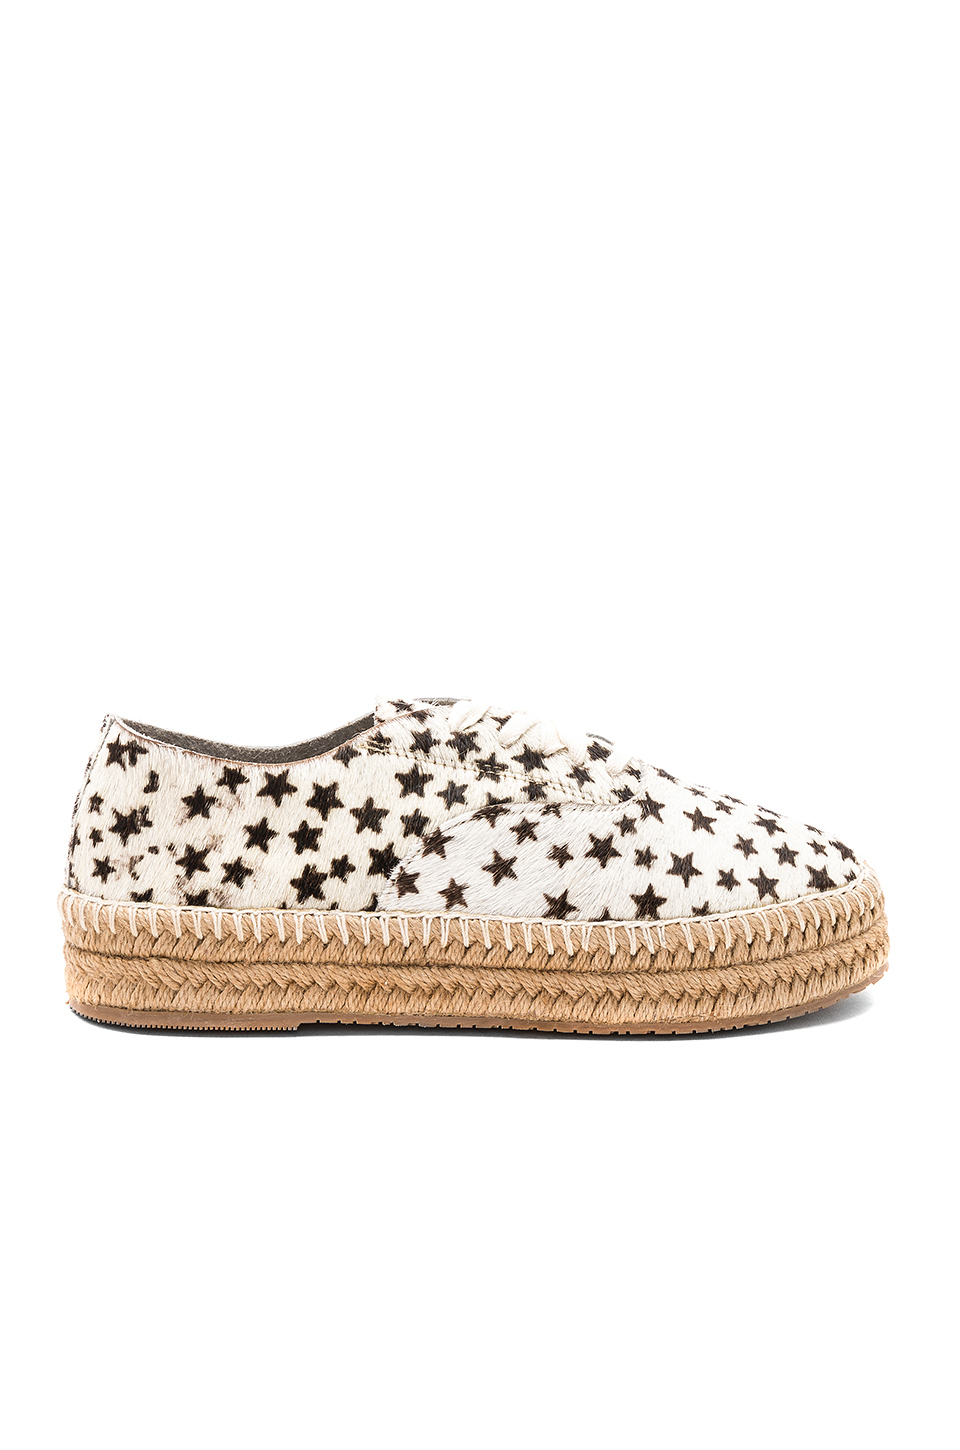 Kaanas Montauk Lace Up Espadrille in Stars